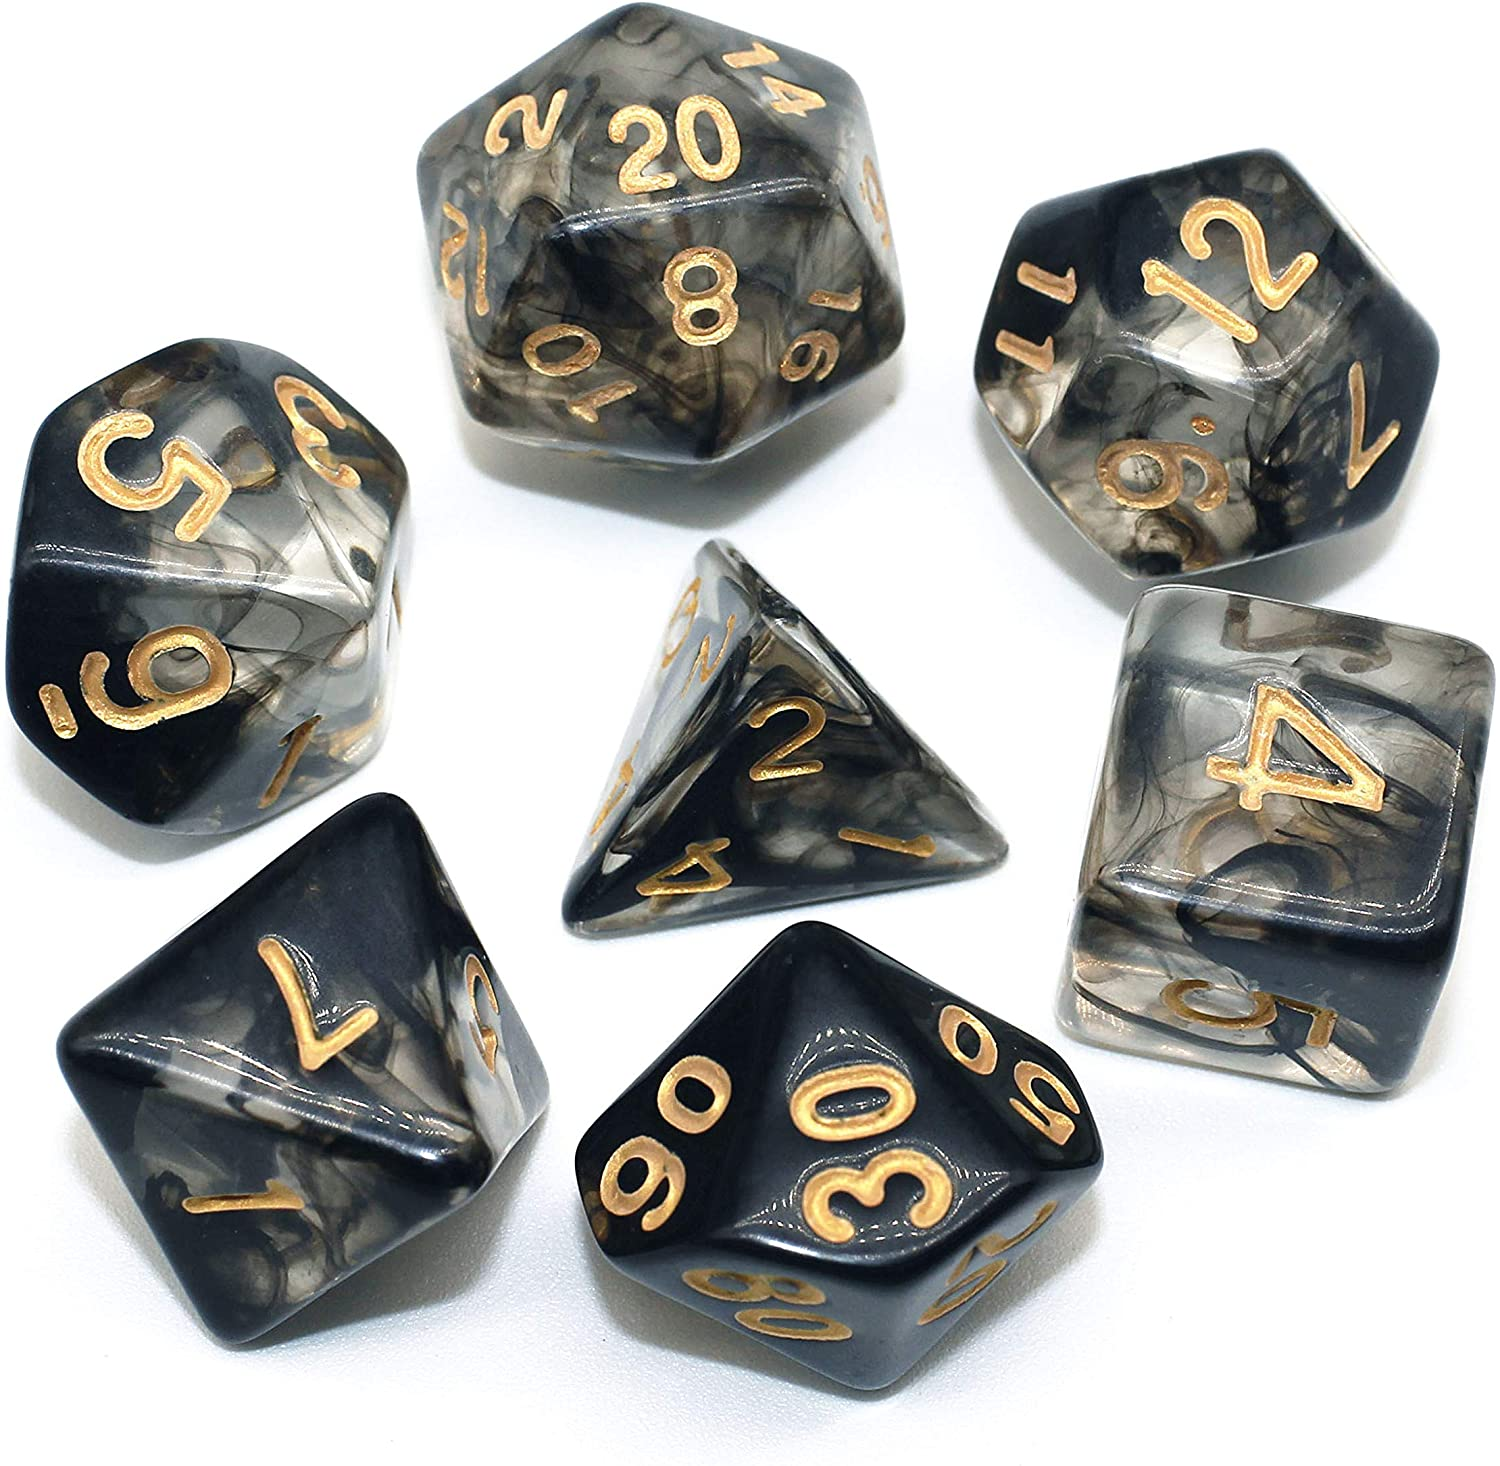 HD Dice DND RPG Polyhedral Dice Set Fit Dungeons and Dragons(D&D) Pathfinder Role Playing Games Black Cloud Transparent Dice